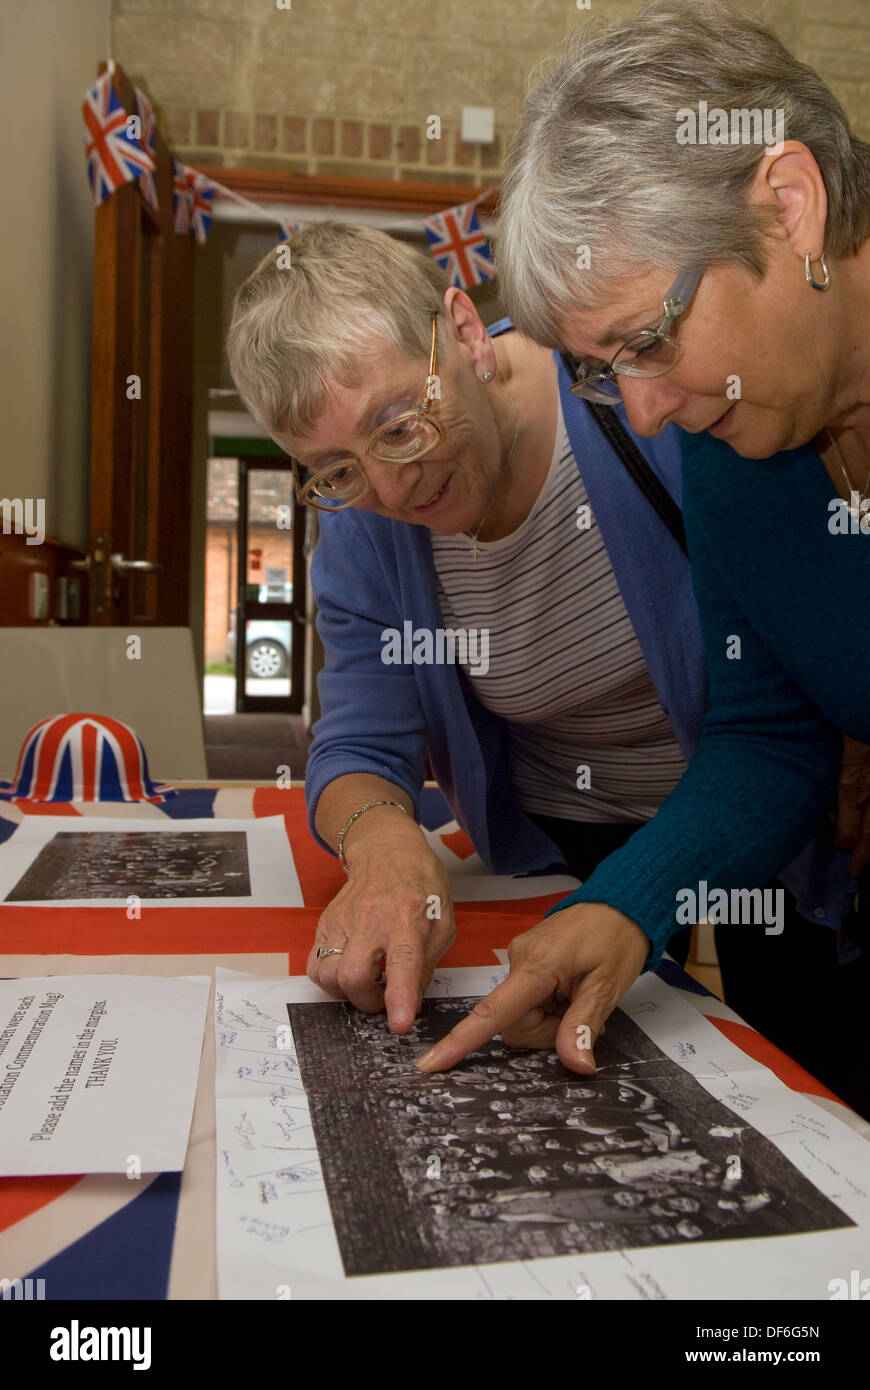 Two elderly women browsing old photographs at a village history open day, Buriton, Hampshire, UK. - Stock Image